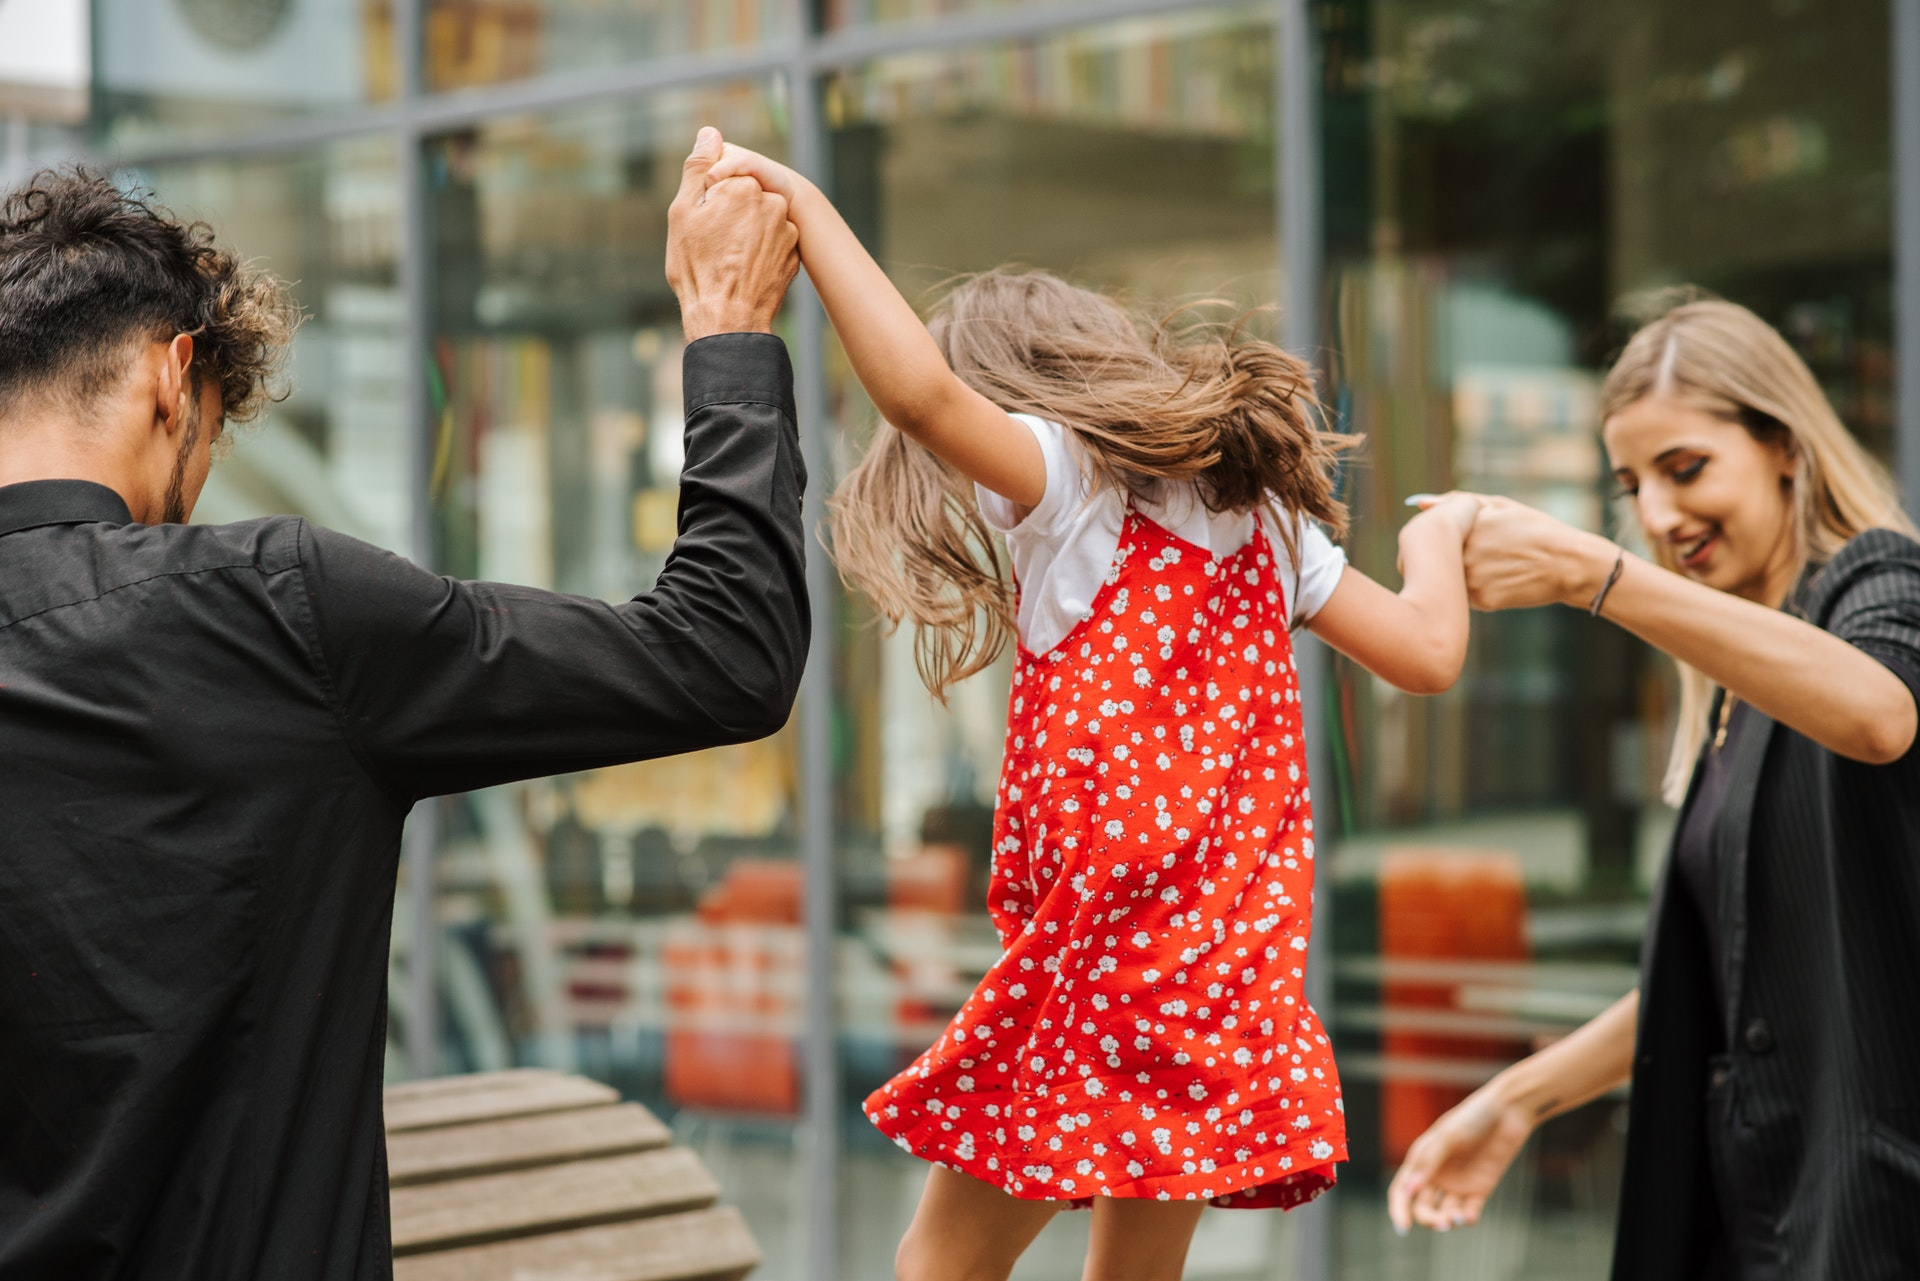 How to Start Co-Parenting: Step-by-Step Guide